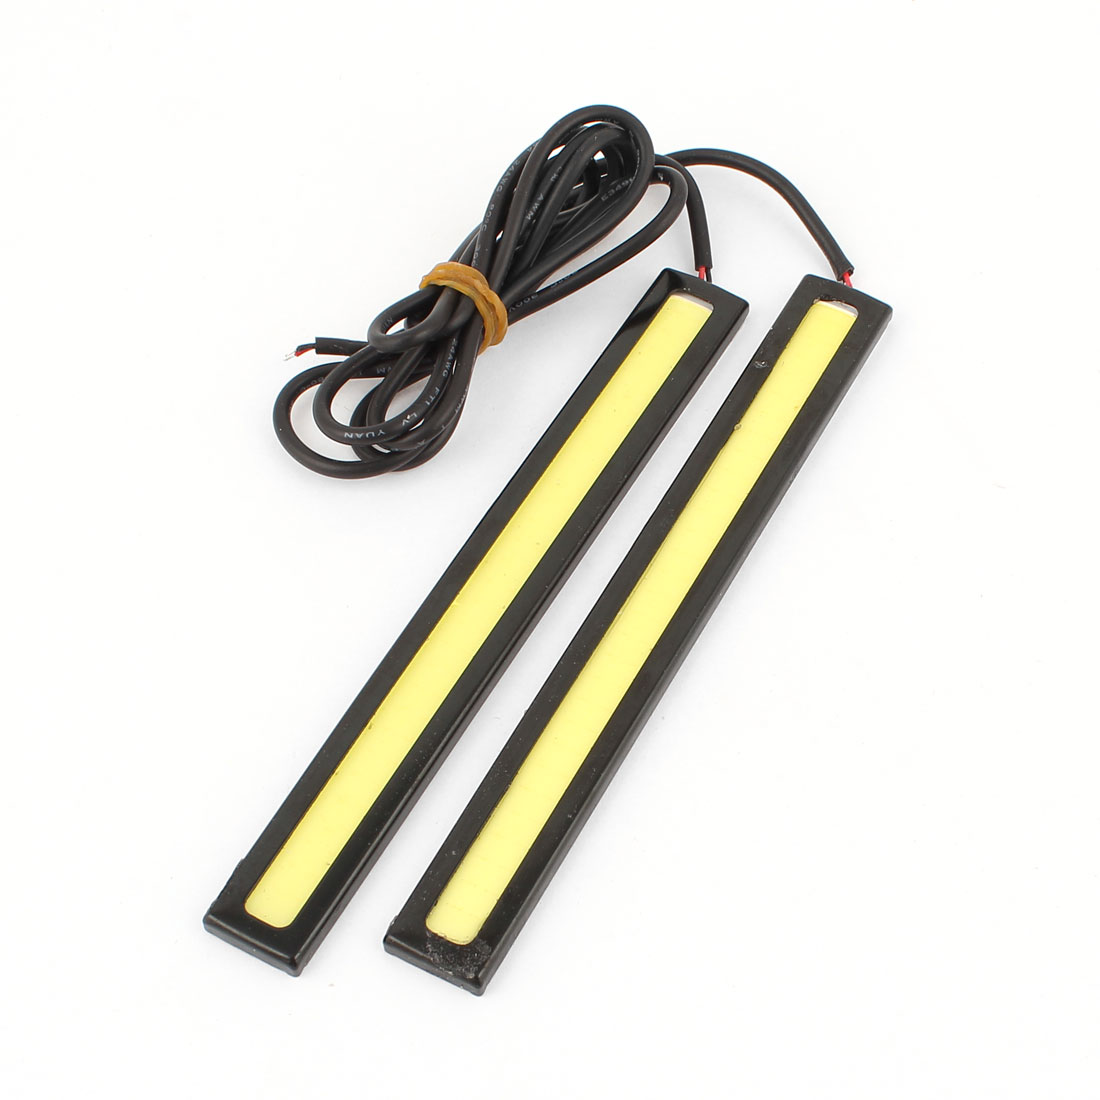 Unique Bargains Auto Self Adhesive 64 COB  Clip DRL Daytime Running Light White 2 Pcs